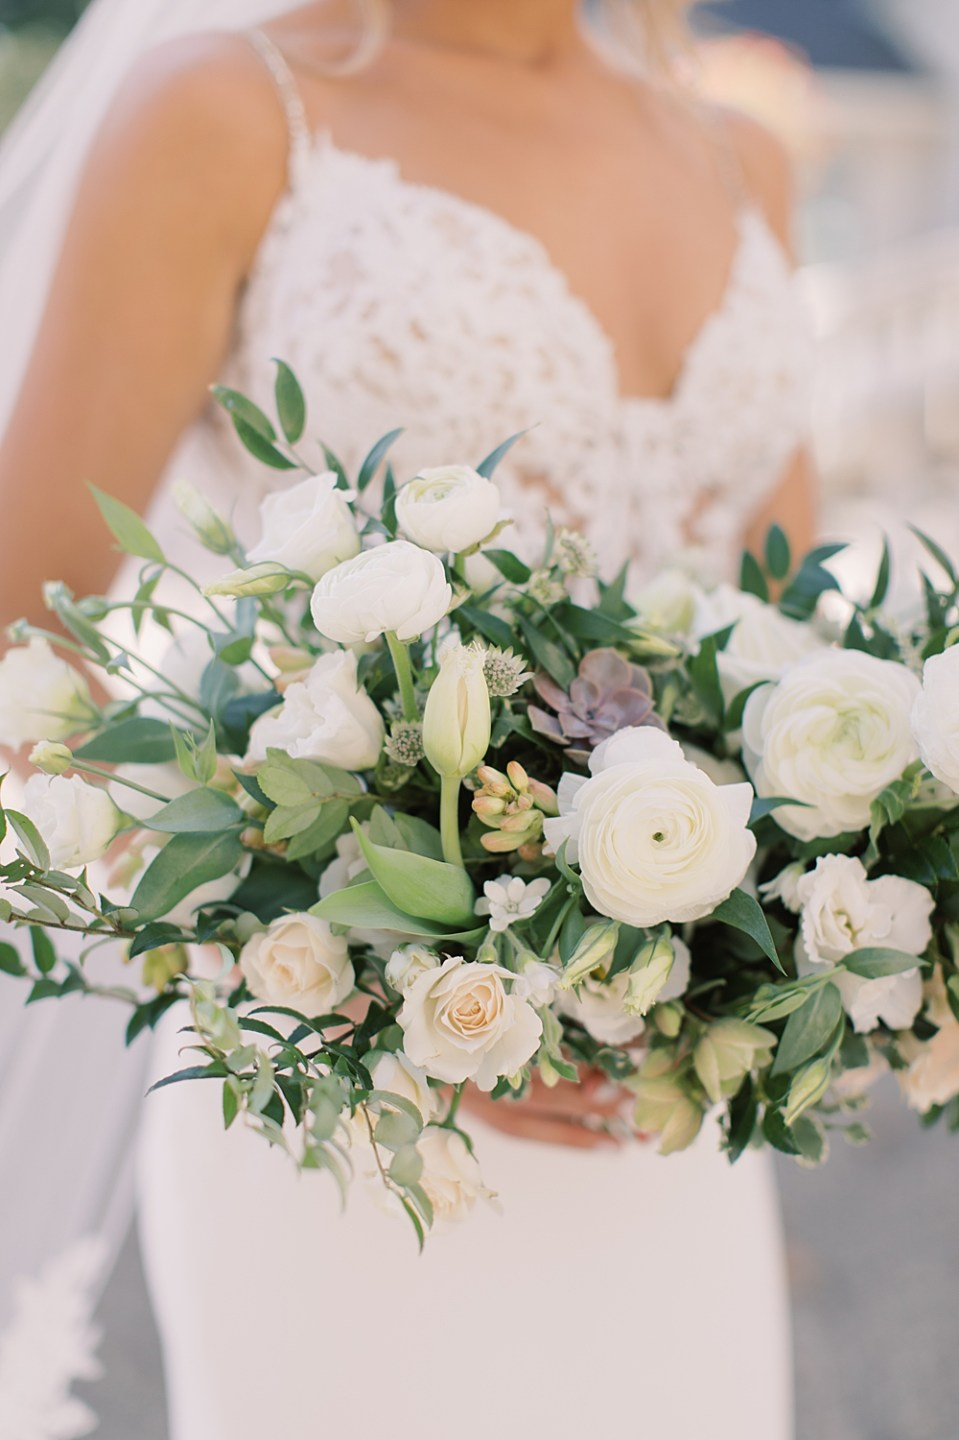 whisper and brook flower co | white and blush bridal bouquet | new jersey wedding photographer sarah canning photography